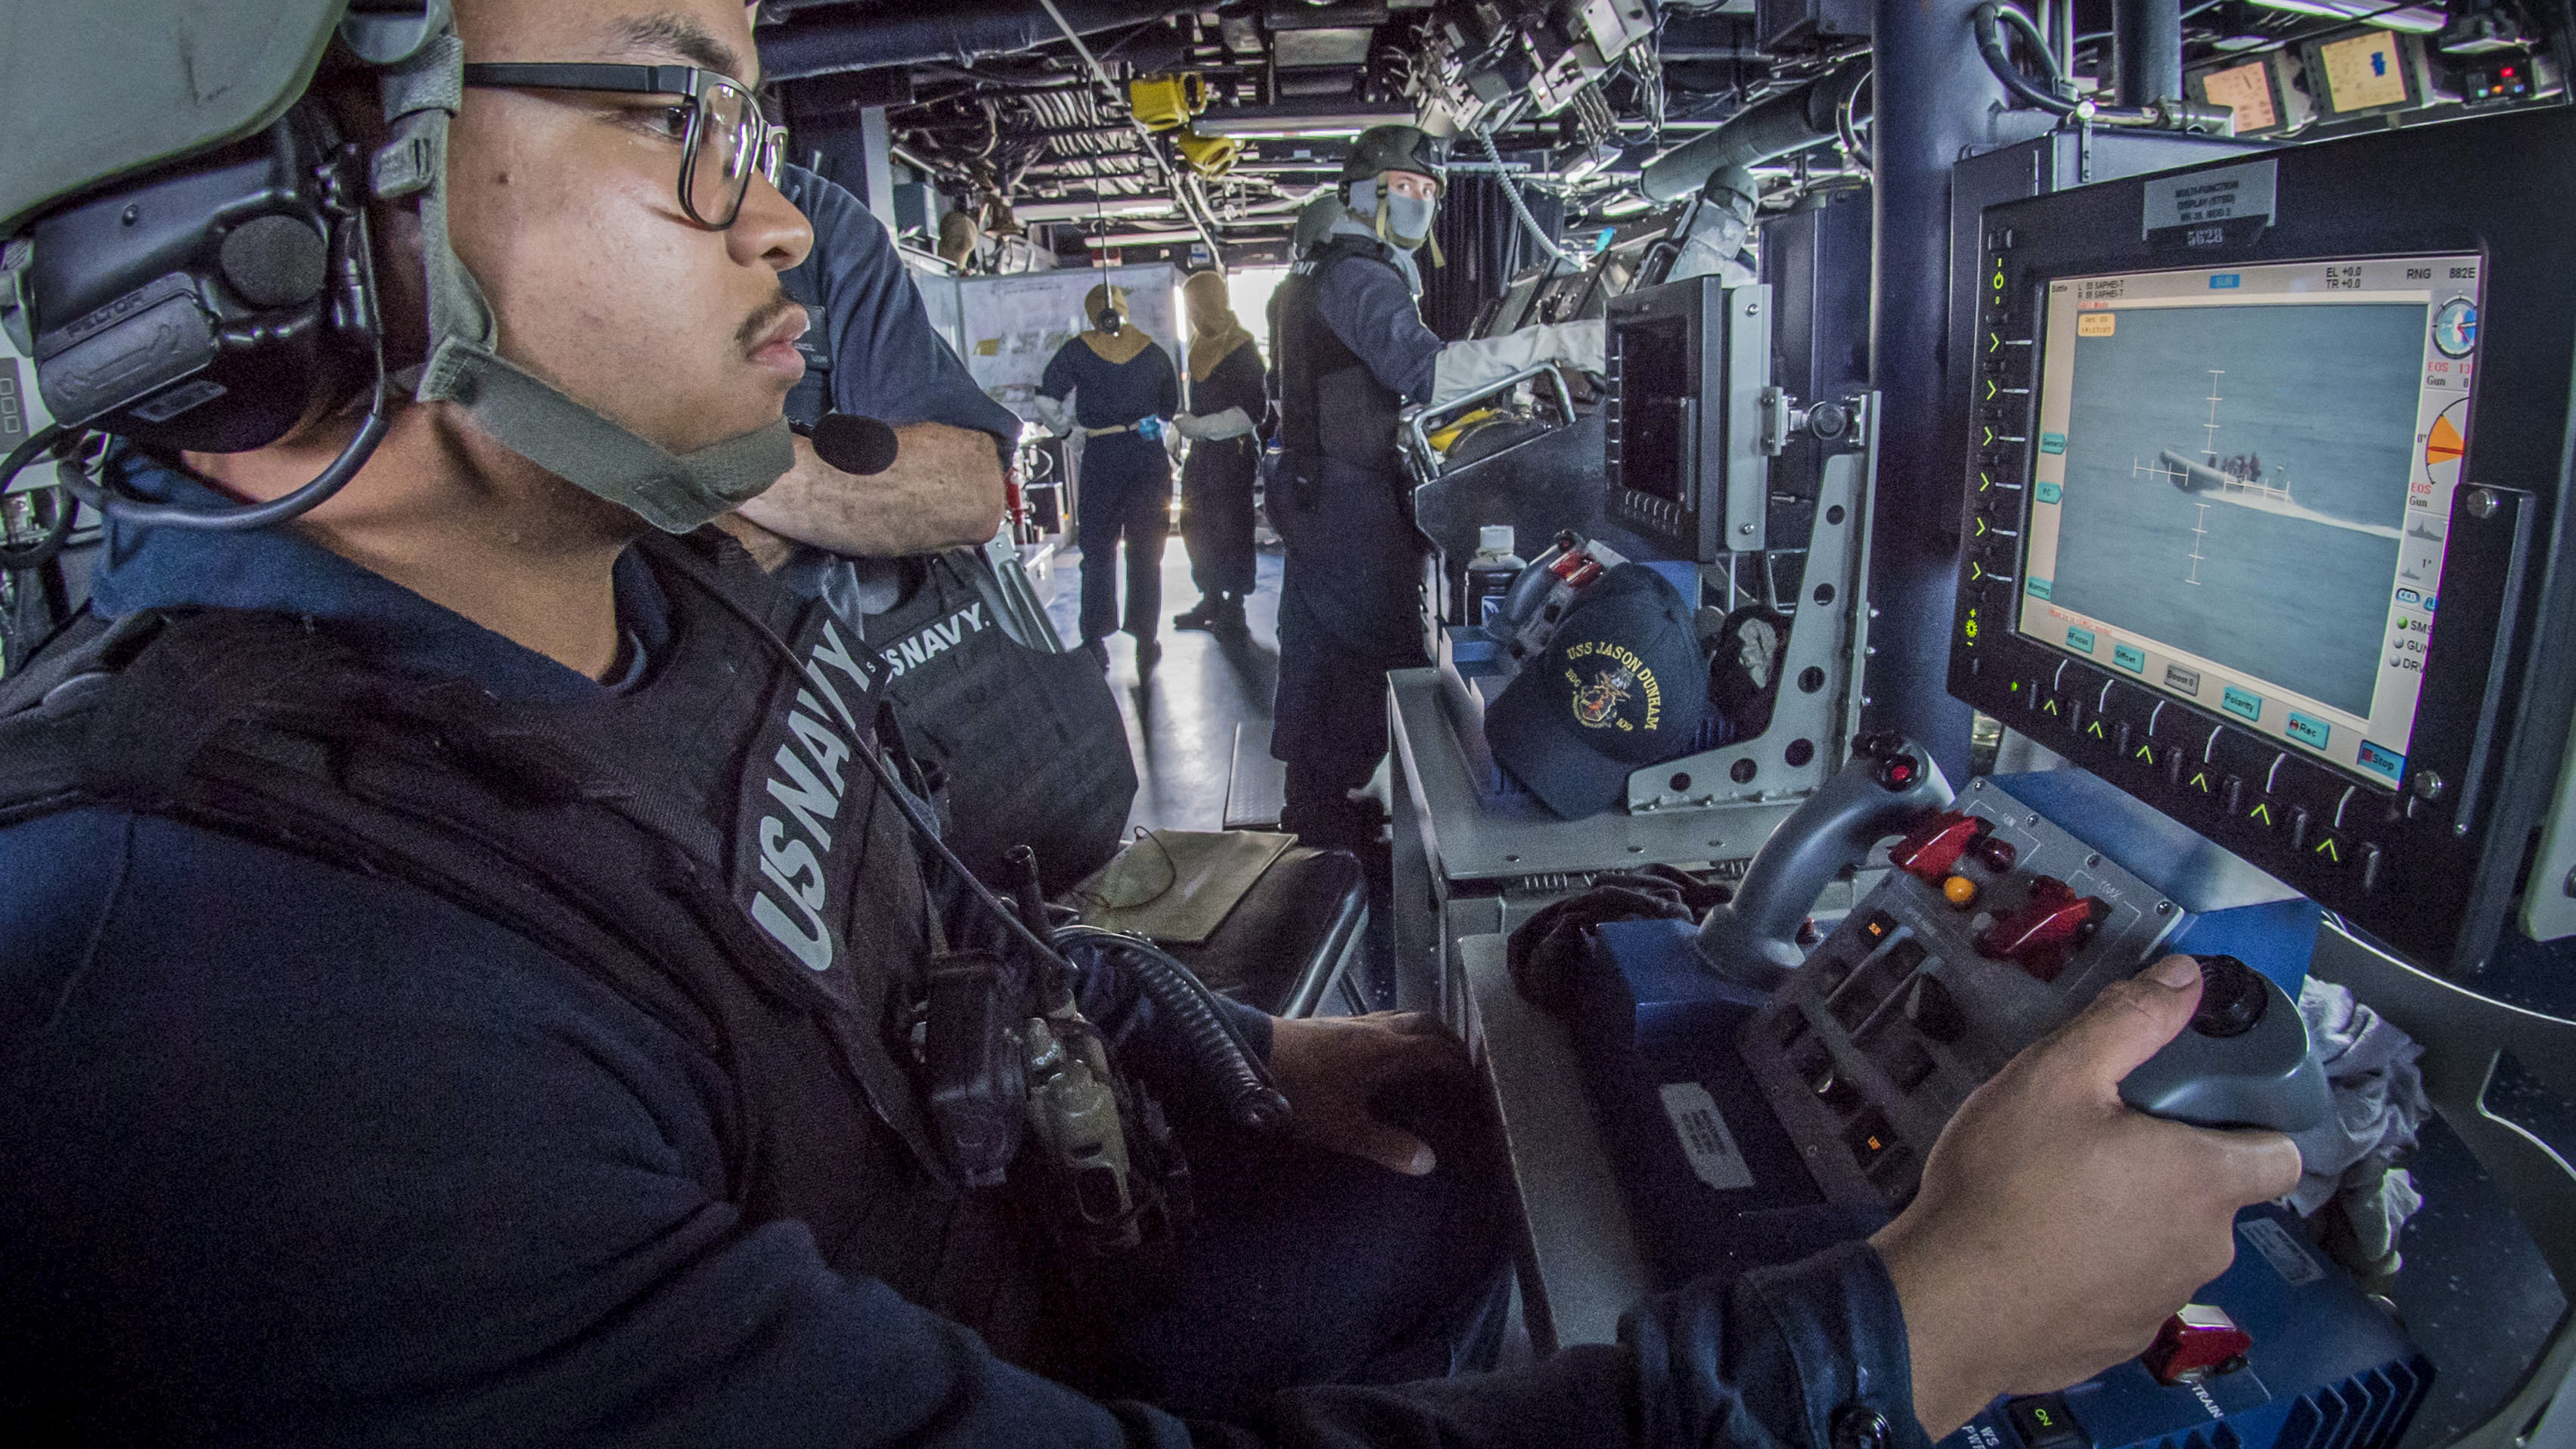 GunnerÕs Mate Seaman Mason Mendiola tracks a small boat with a remote operating console for the Mark 38 25 mm machine gun system during a general quarters exercise aboard the guided-missile destroyer USS Jason Dunham (DDG 109). Jason Dunham is deployed to the U.S. 5th Fleet area of operations in support of naval operations to ensure maritime stability and security in the Central Region, connecting the Mediterranean and the Pacific through the western Indian Ocean and three strategic choke points. (MC3 Jonathan Clay/Navy)